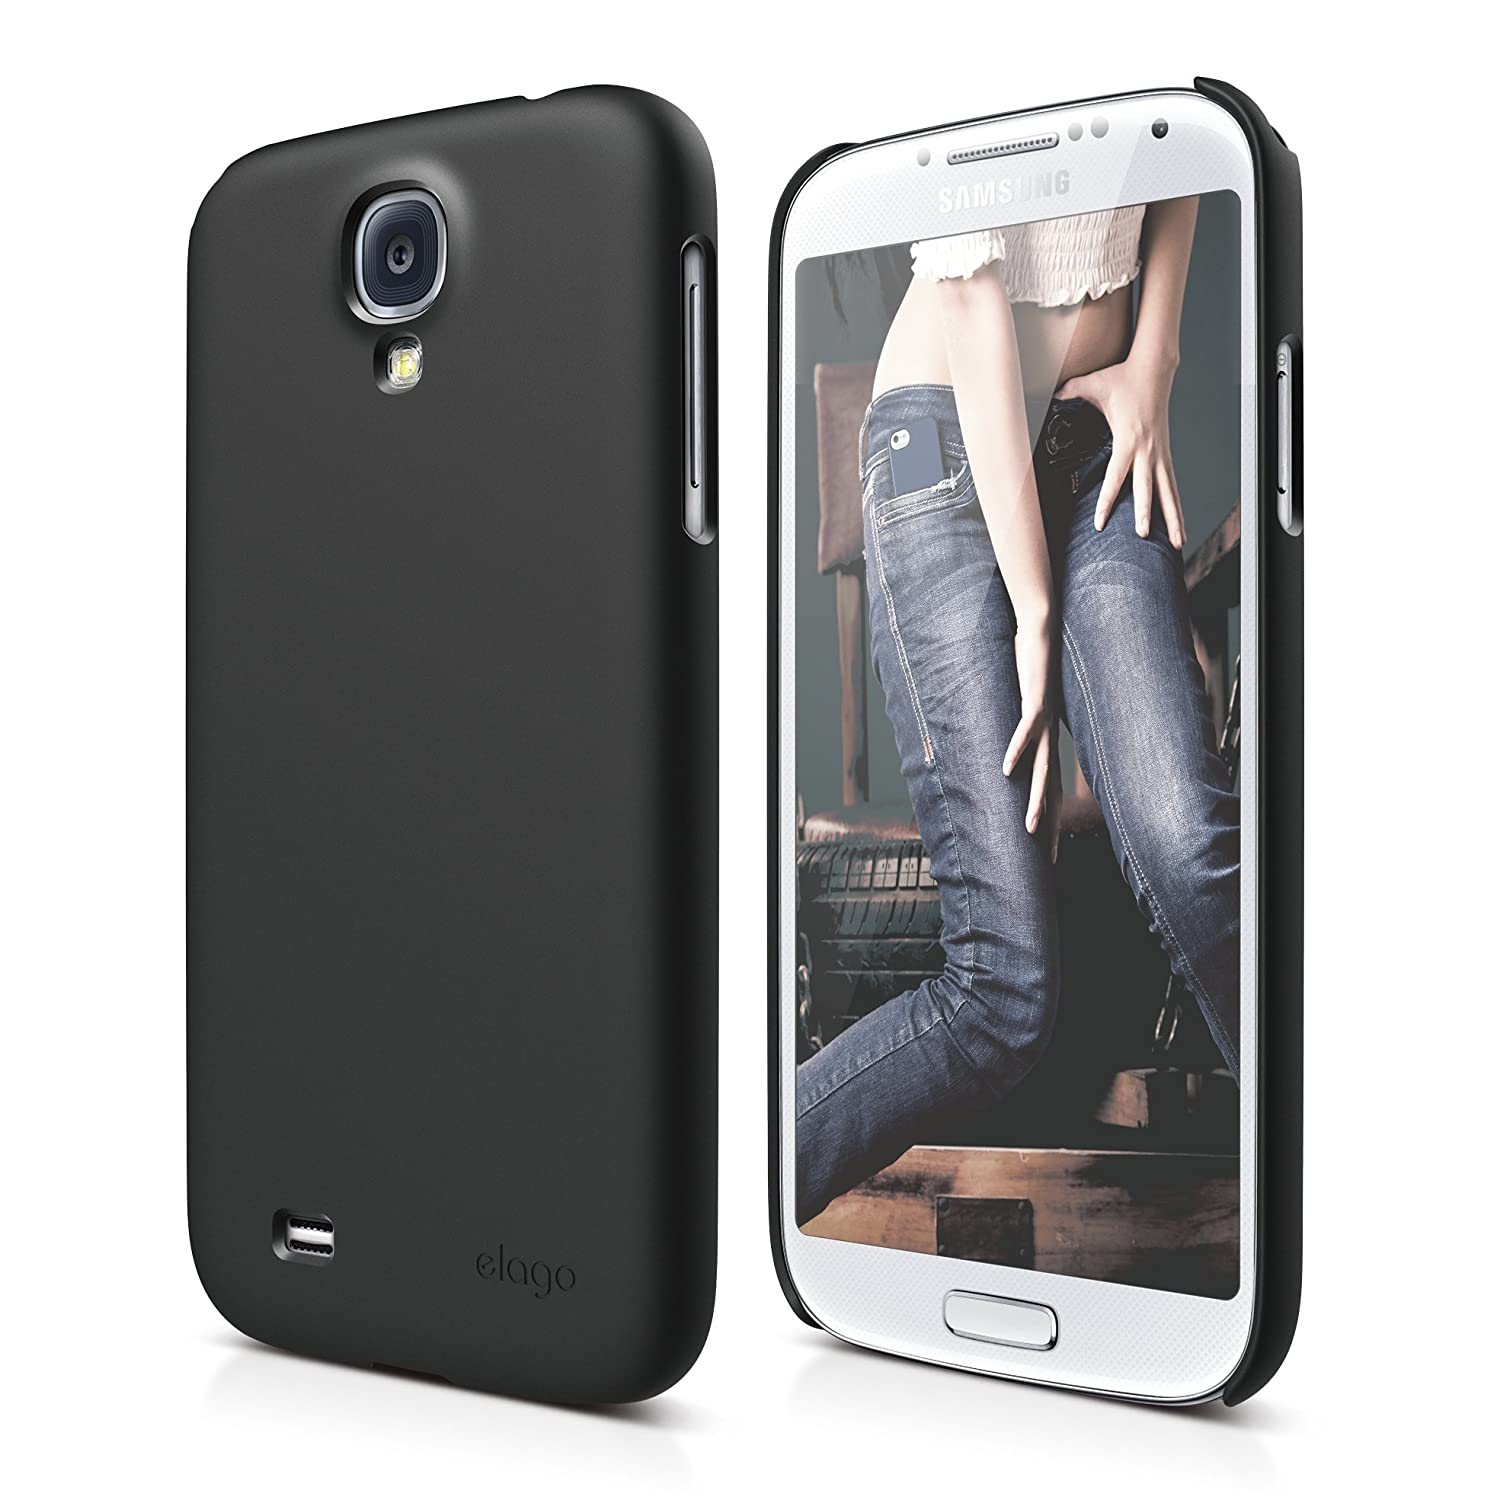 elago G7 Slim Fit Case for Galaxy S4 + HD Professional Extreme Clear film included - Full Retail Packaging (Soft feeling Black)